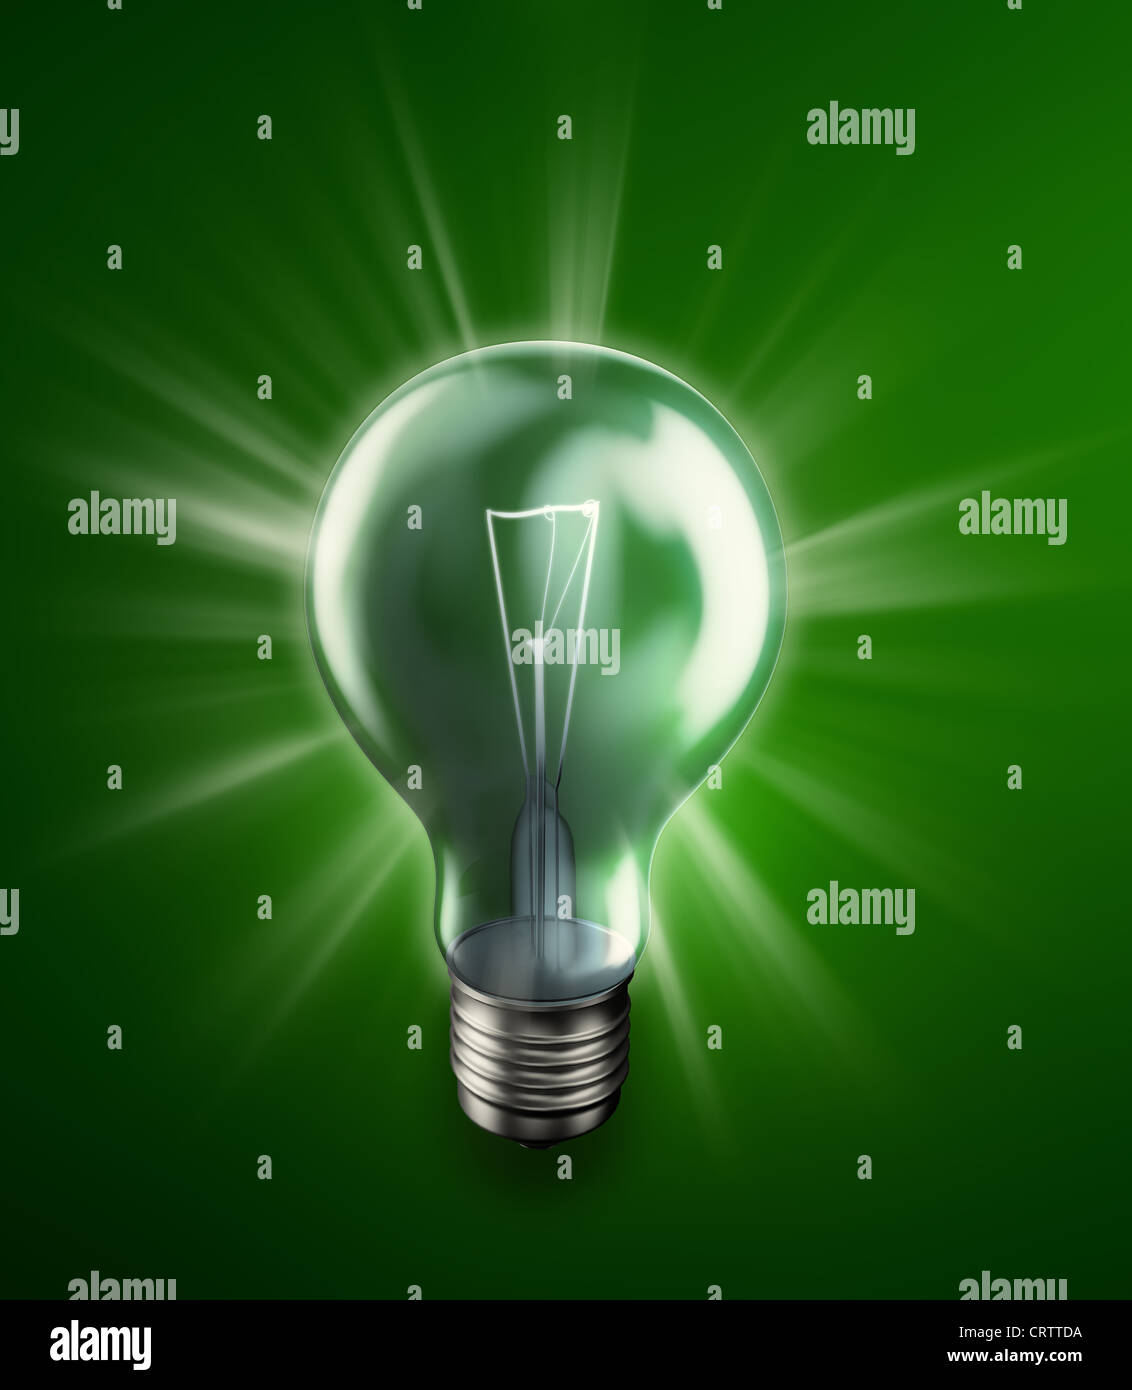 Glowing bulb -energy concept illustration - Stock Image